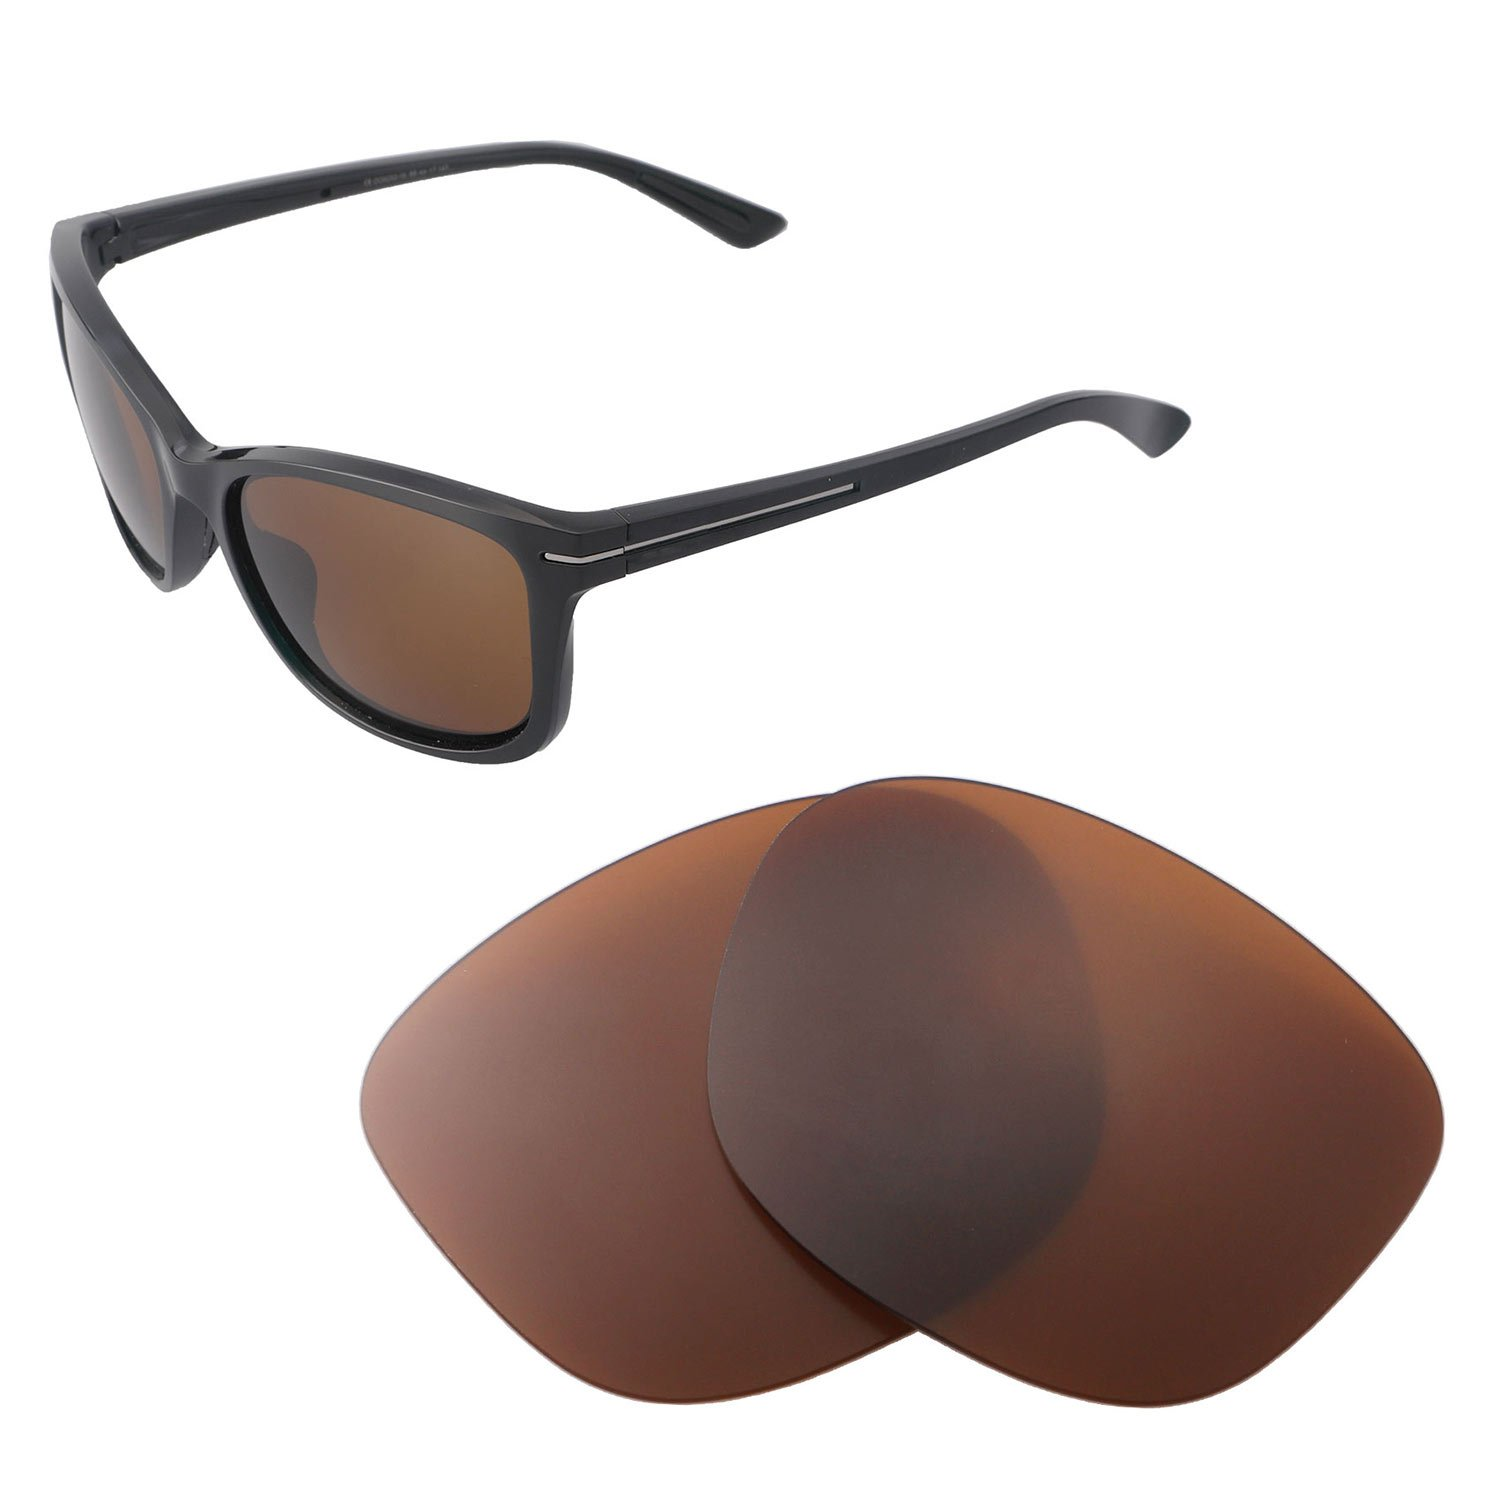 6c2637d21bd95 Amazon.com: Walleva Replacement Lenses for Oakley Drop in Sunglasses -  Multiple Options Available (Brown - Polarized): Clothing